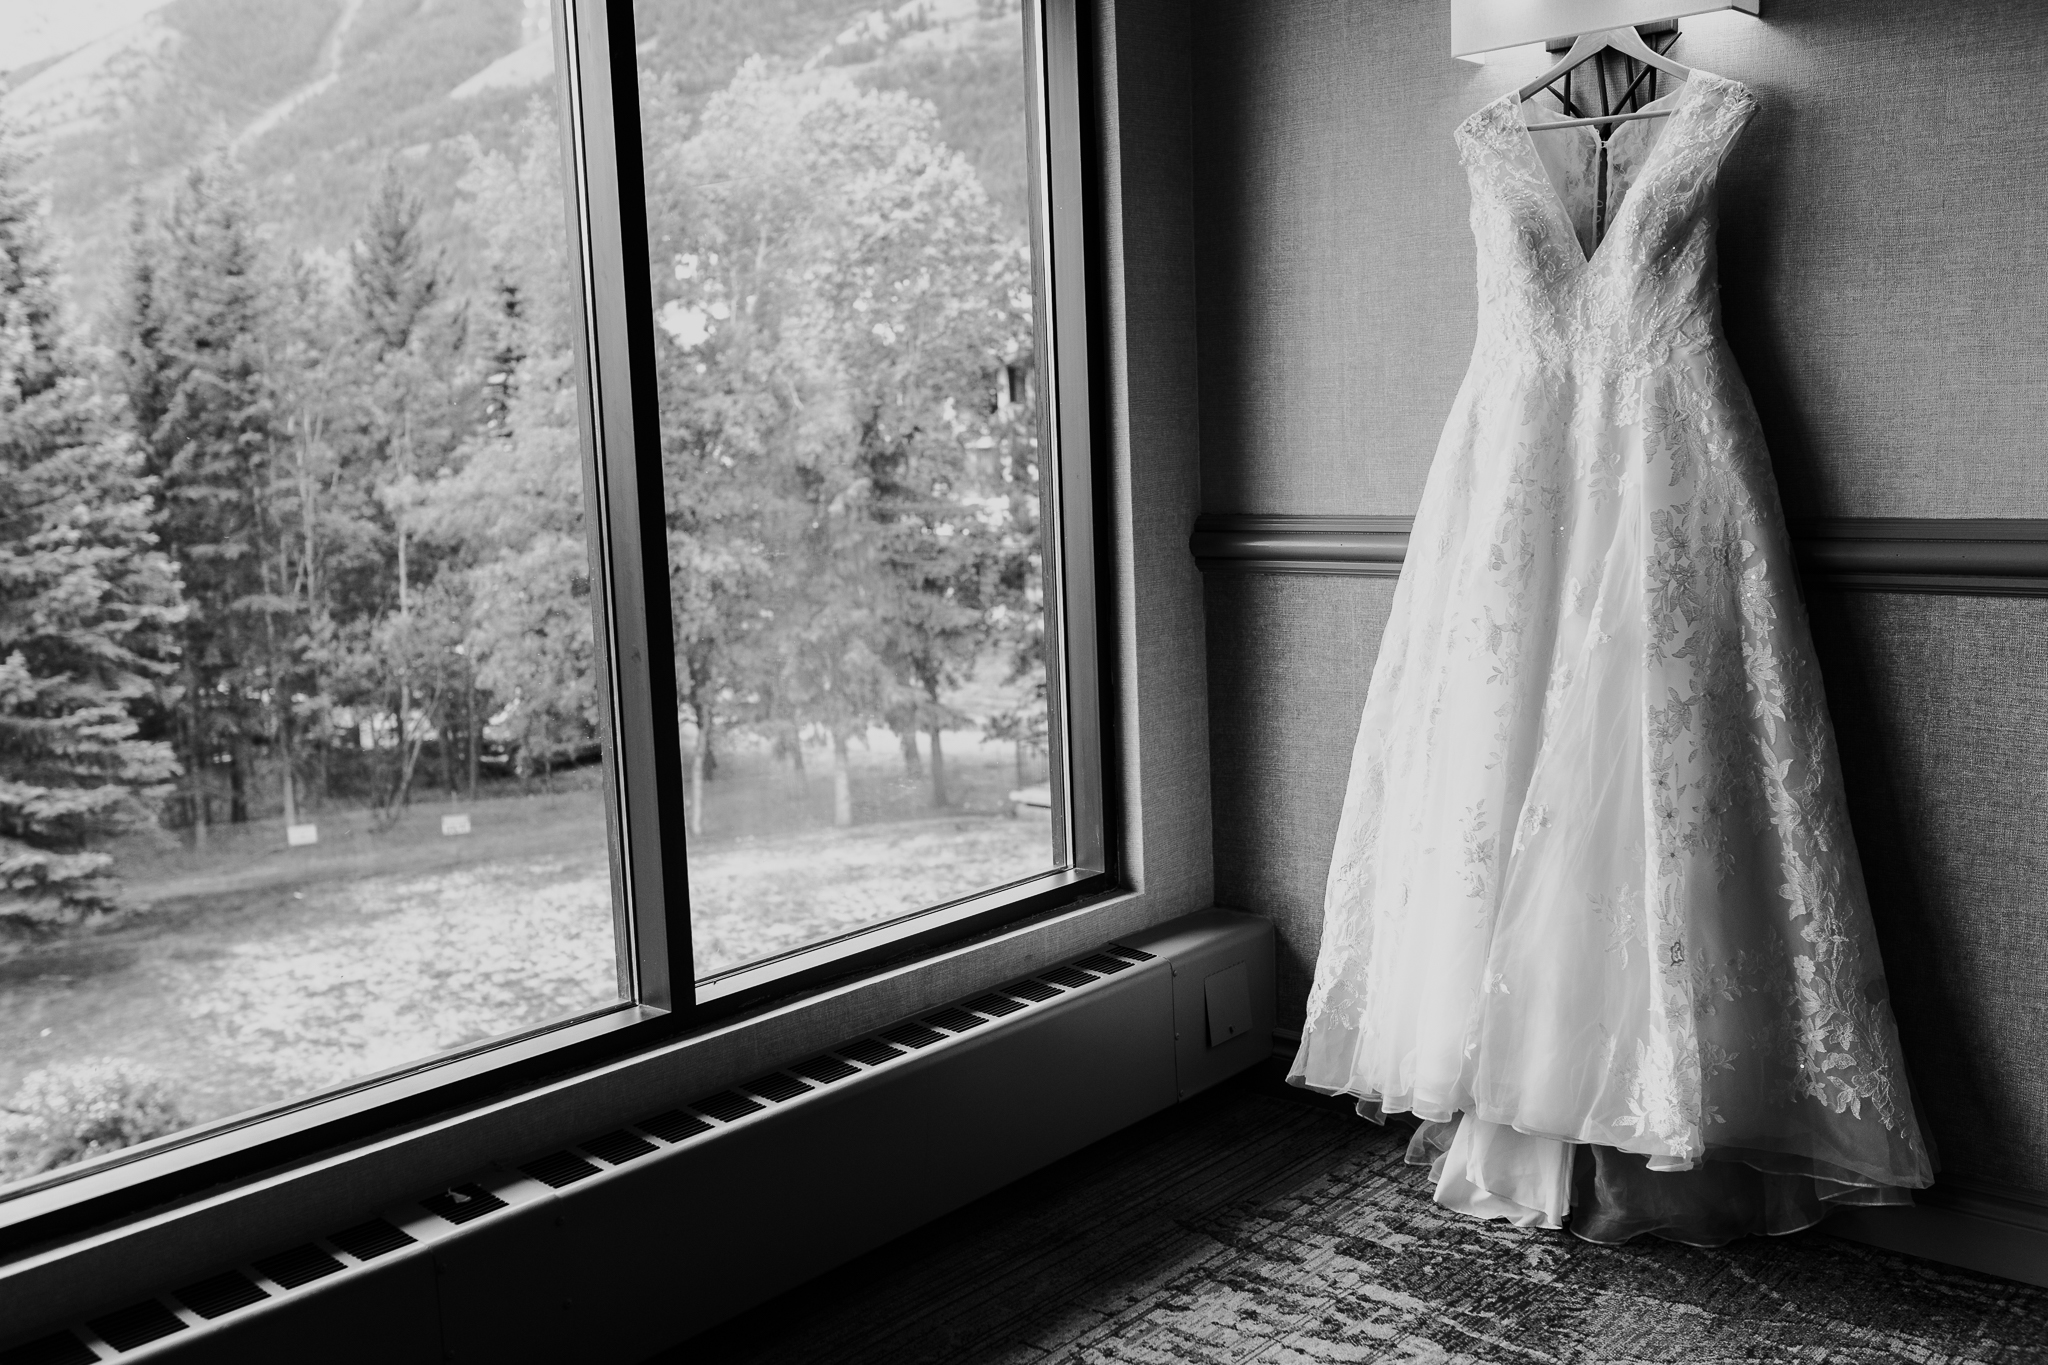 Brides gown hanging in window at Delta Kananaskis